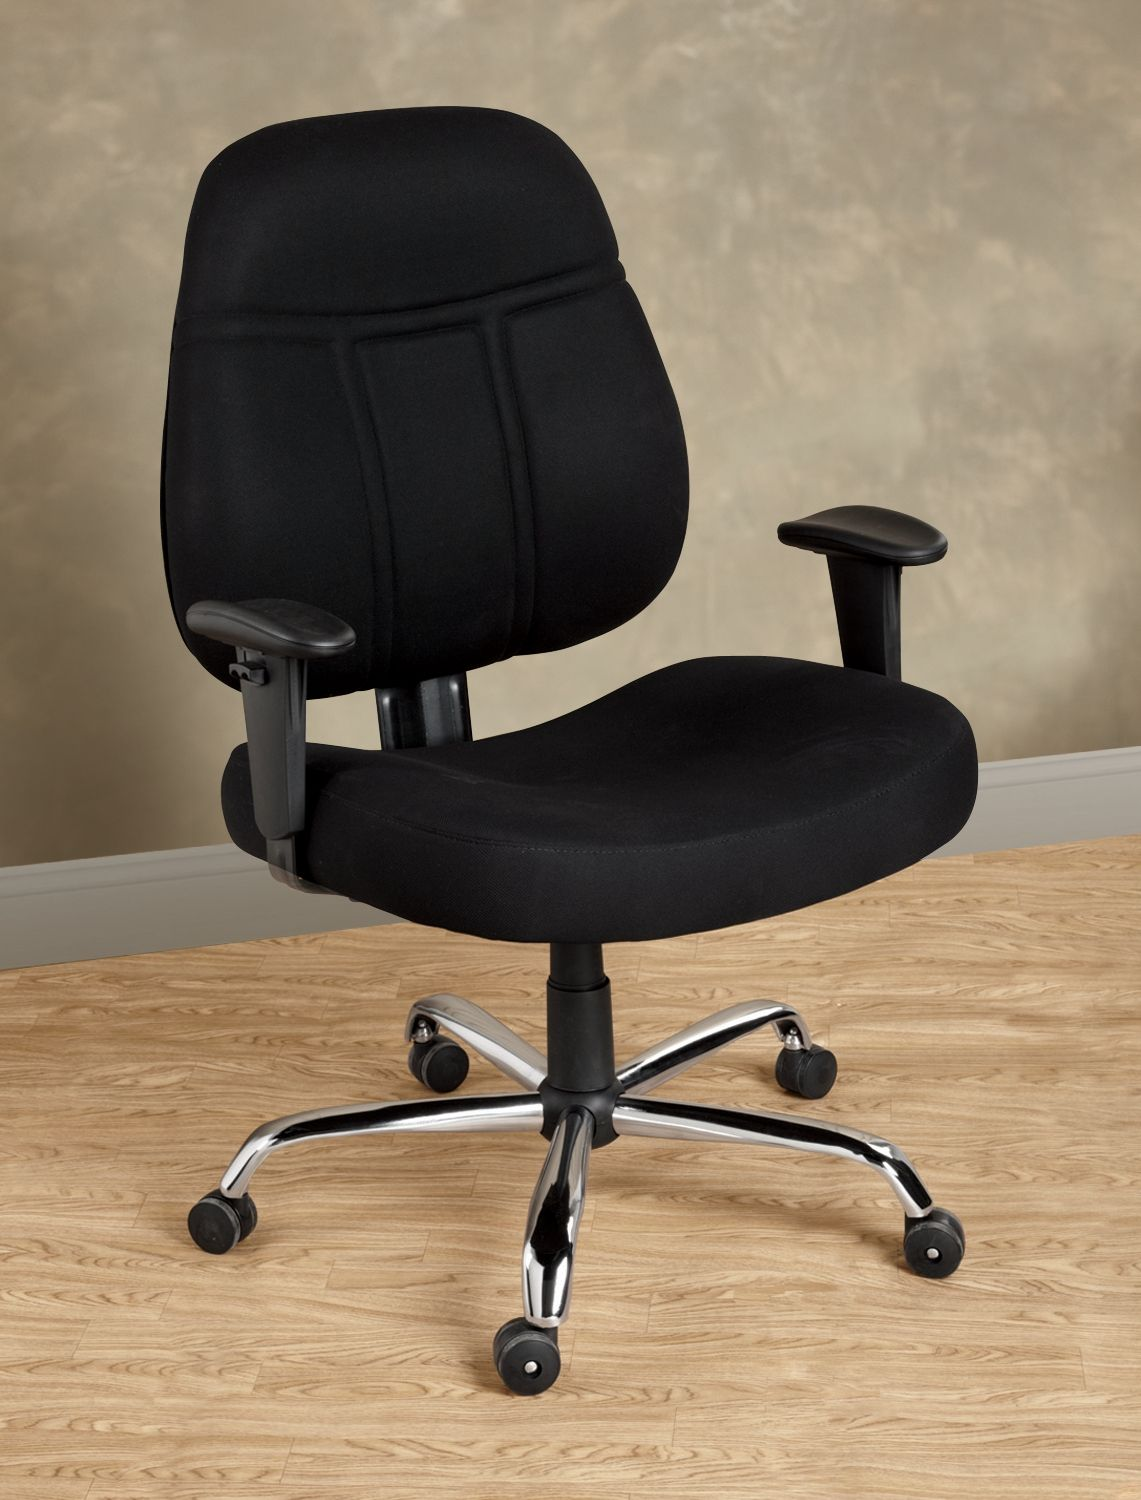 Chairs For Tall Man 1 000 Lb Capacity Office Chair With Arms Best Assortment Of Big